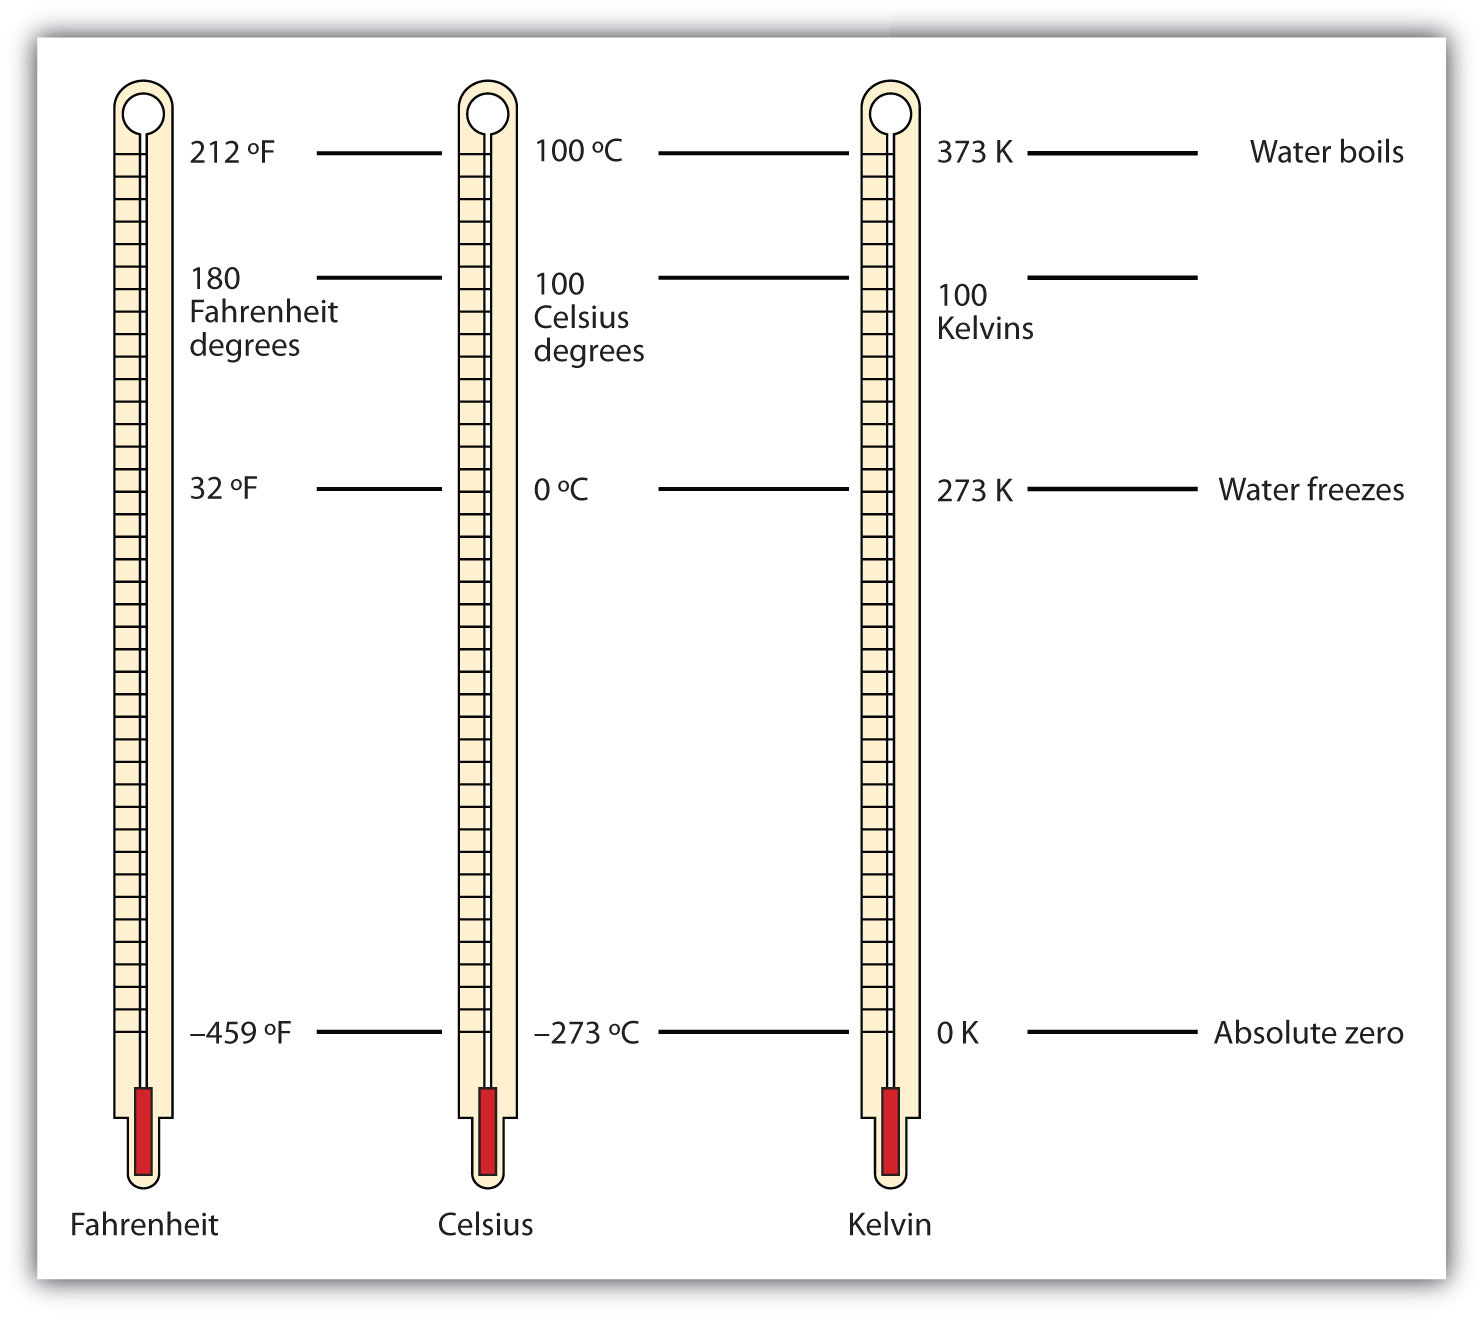 other units temperature and density